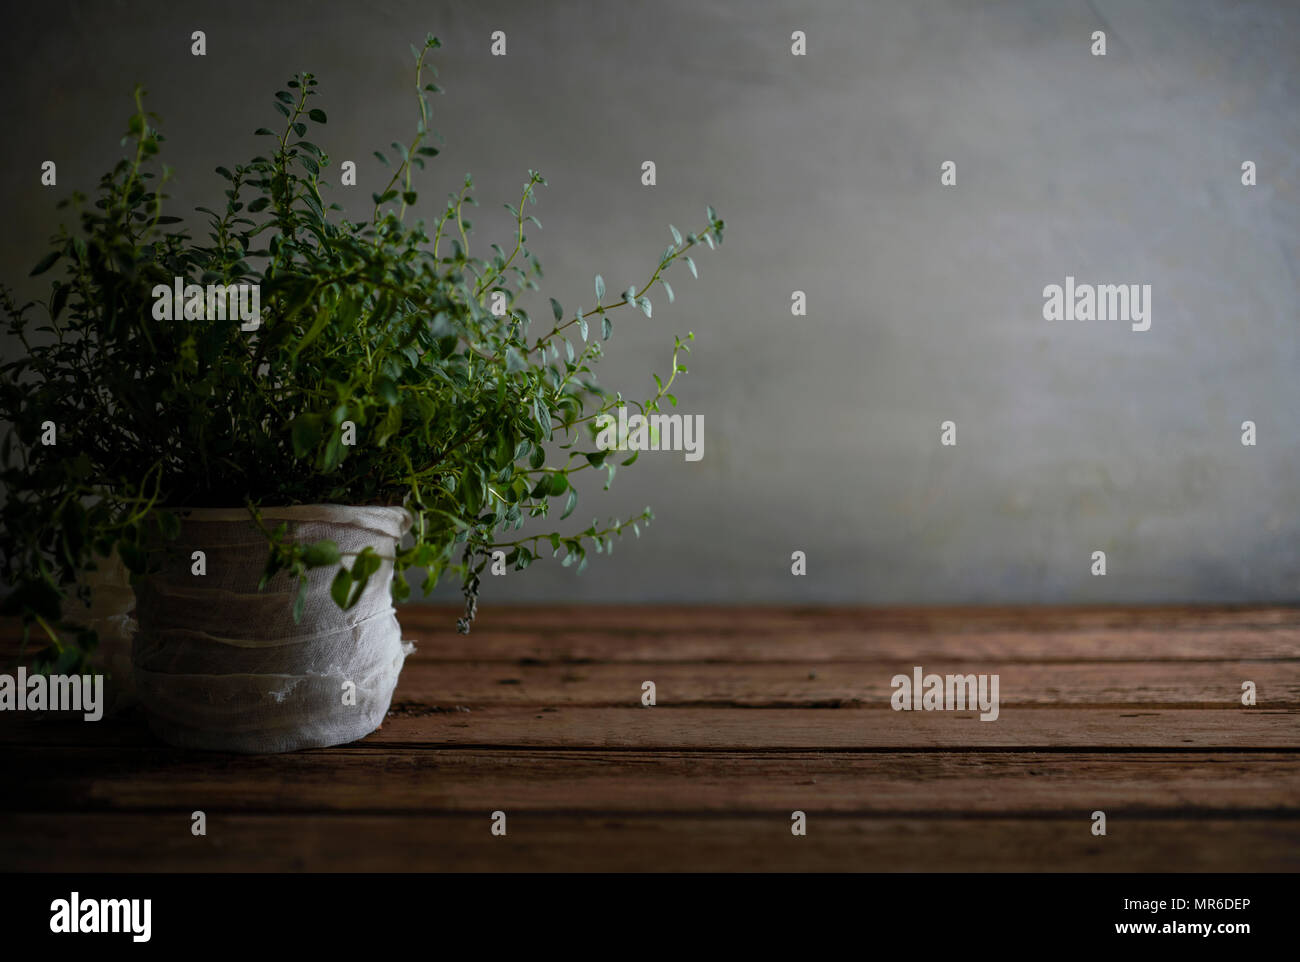 A beautiful, messy oregano plant on a worn wood table. - Stock Image